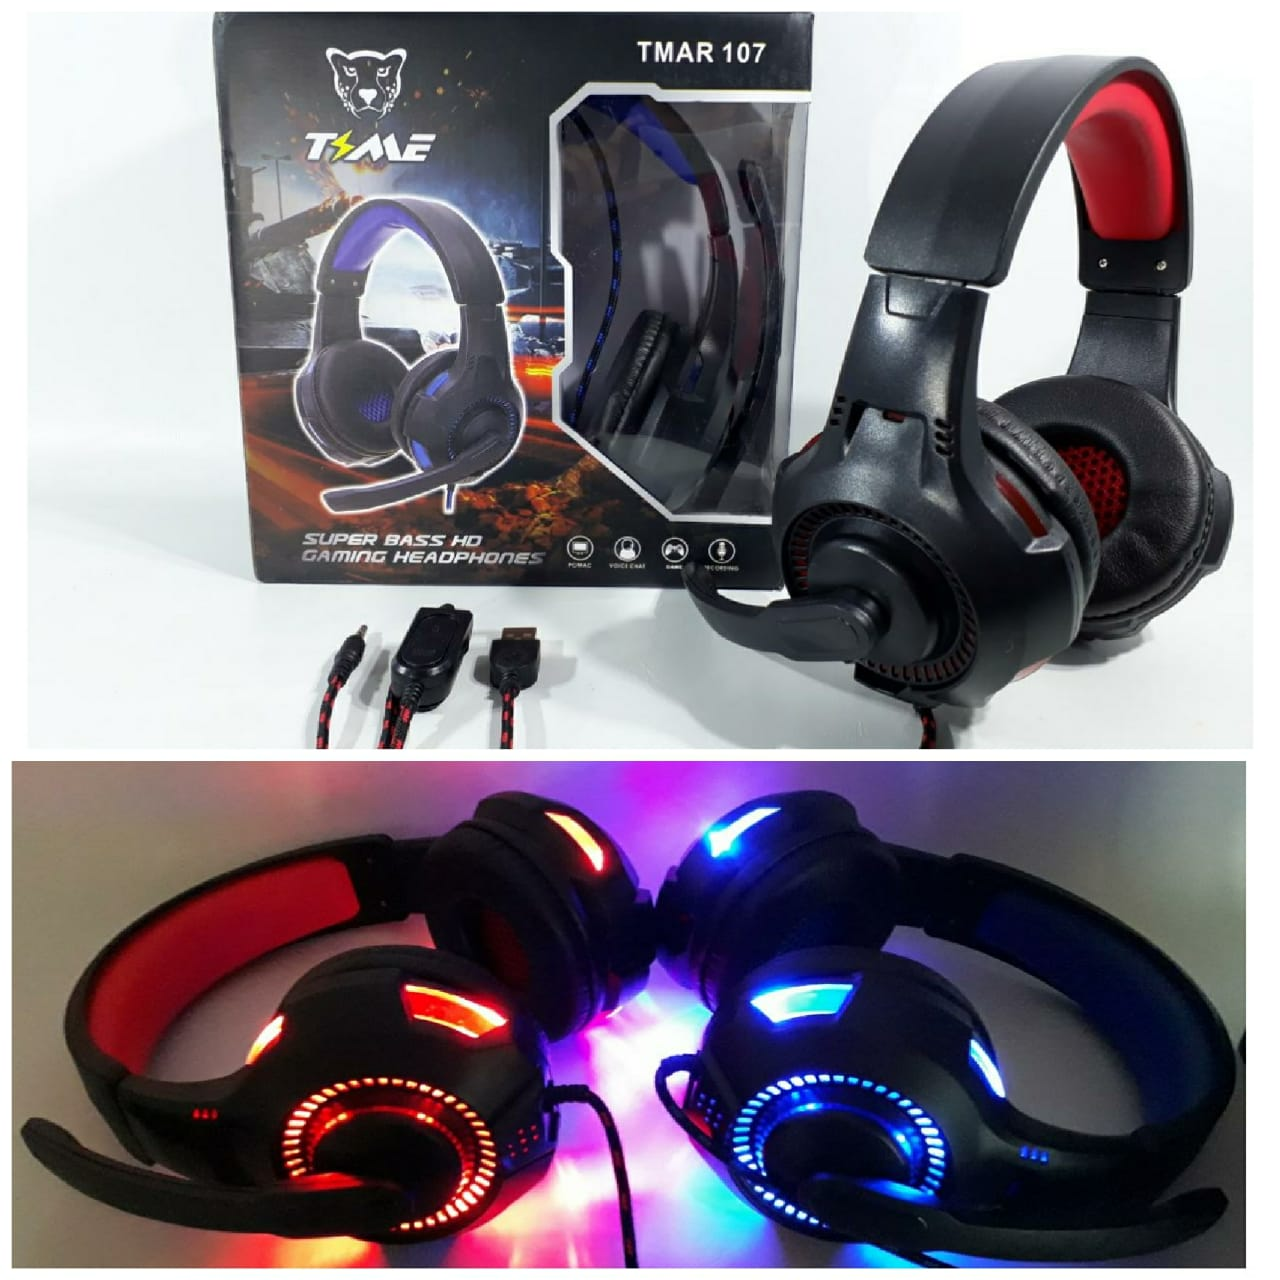 ELG VINCHA GAMER TIME C/ LUZ LED (PS4,PC)2MT CORDONO JGT